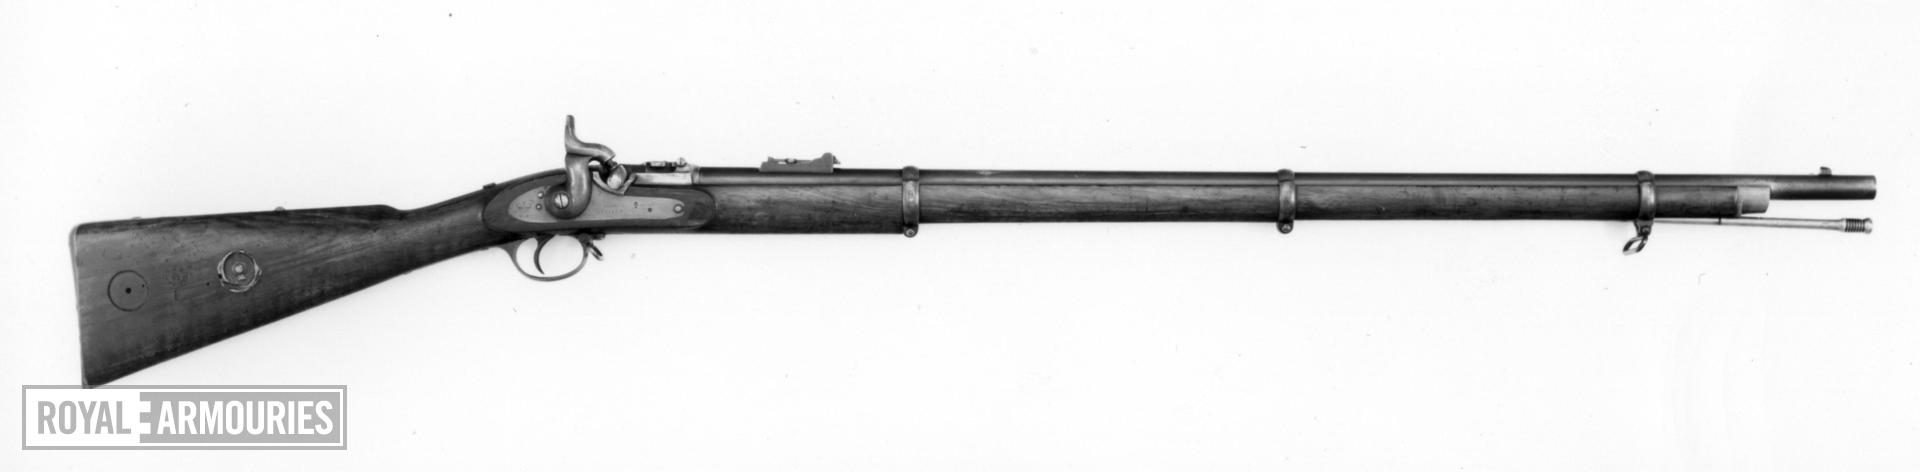 Percussion breech-loading military rifle - Pattern 1853 with Mont Storm's conversion, sealed pattern Enfield converted with W.M. Storm's breech, patented 1857